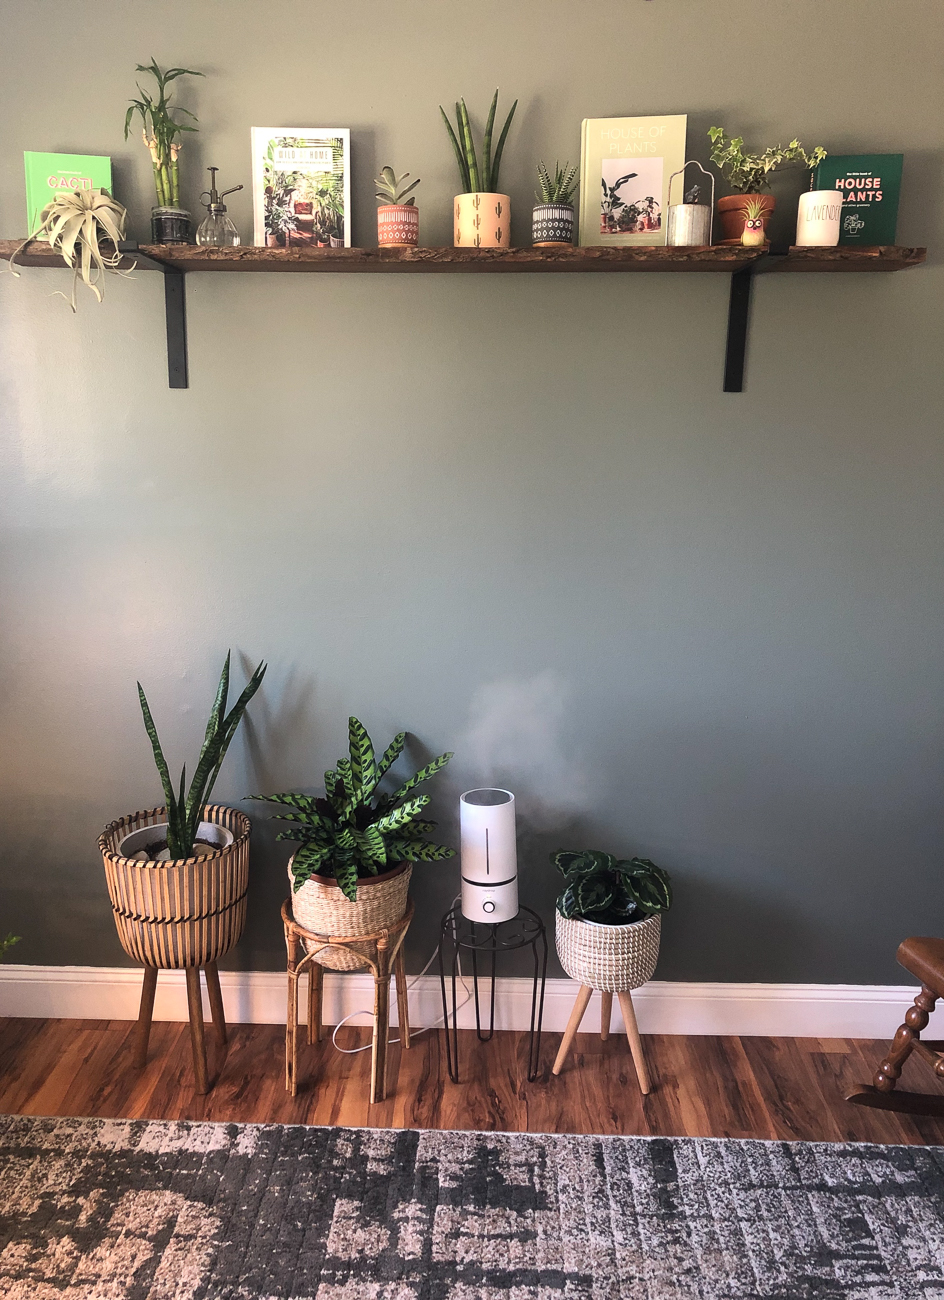 "Megan Huffmeyer (IG: @meg_plantagram) from Colerain Township / ""I have always loved plants and had a small collection that I started a few years ago. As I feel is true for many, my collection expanded even more throughout COVID. My collection started with mainly succulents and cacti, but after seeing all of the variety of calatheas, I wanted to push myself to take care of something more finicky. My inspiration for my room came from wanting to combine my love for the outdoors with my compassion for all living things. With working on a crisis team and dealing with additional stress from COVID, I also felt this sense of urgency to create a space for myself to where I could decompress and unwind within the safety of my home, given limited access to the outdoors. I've also been inspired by the many bloggers out there who share their stories and inspirations, like Hilton Carter and his book Wild at Home. My favorite part about this room is sitting in my rocking chair in the corner and reading up on my current plants. I won't lie, I also spend hours gasping in excitement when I see new growths."" / Image courtesy of Megan Huffmeyer // Published: 6.13.20"